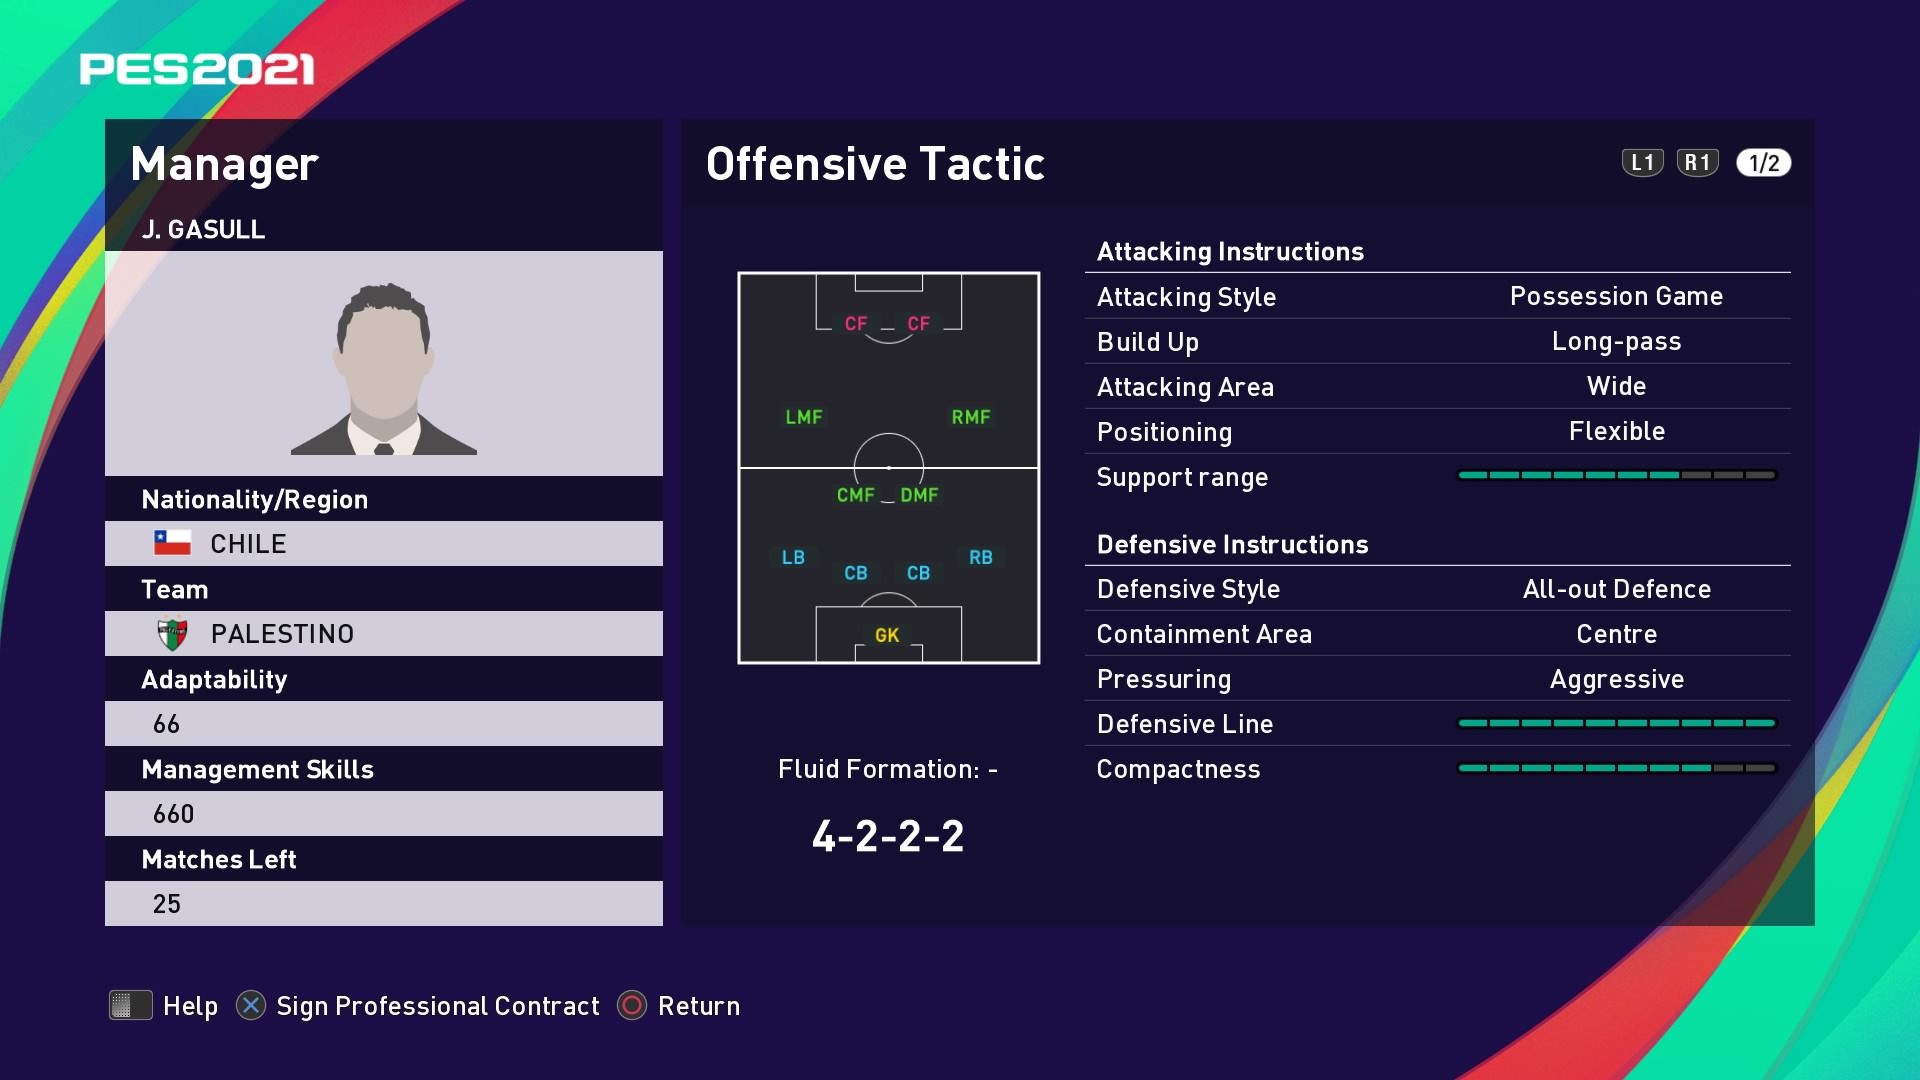 J. Gasull (Ivo Basay) Offensive Tactic in PES 2021 myClub